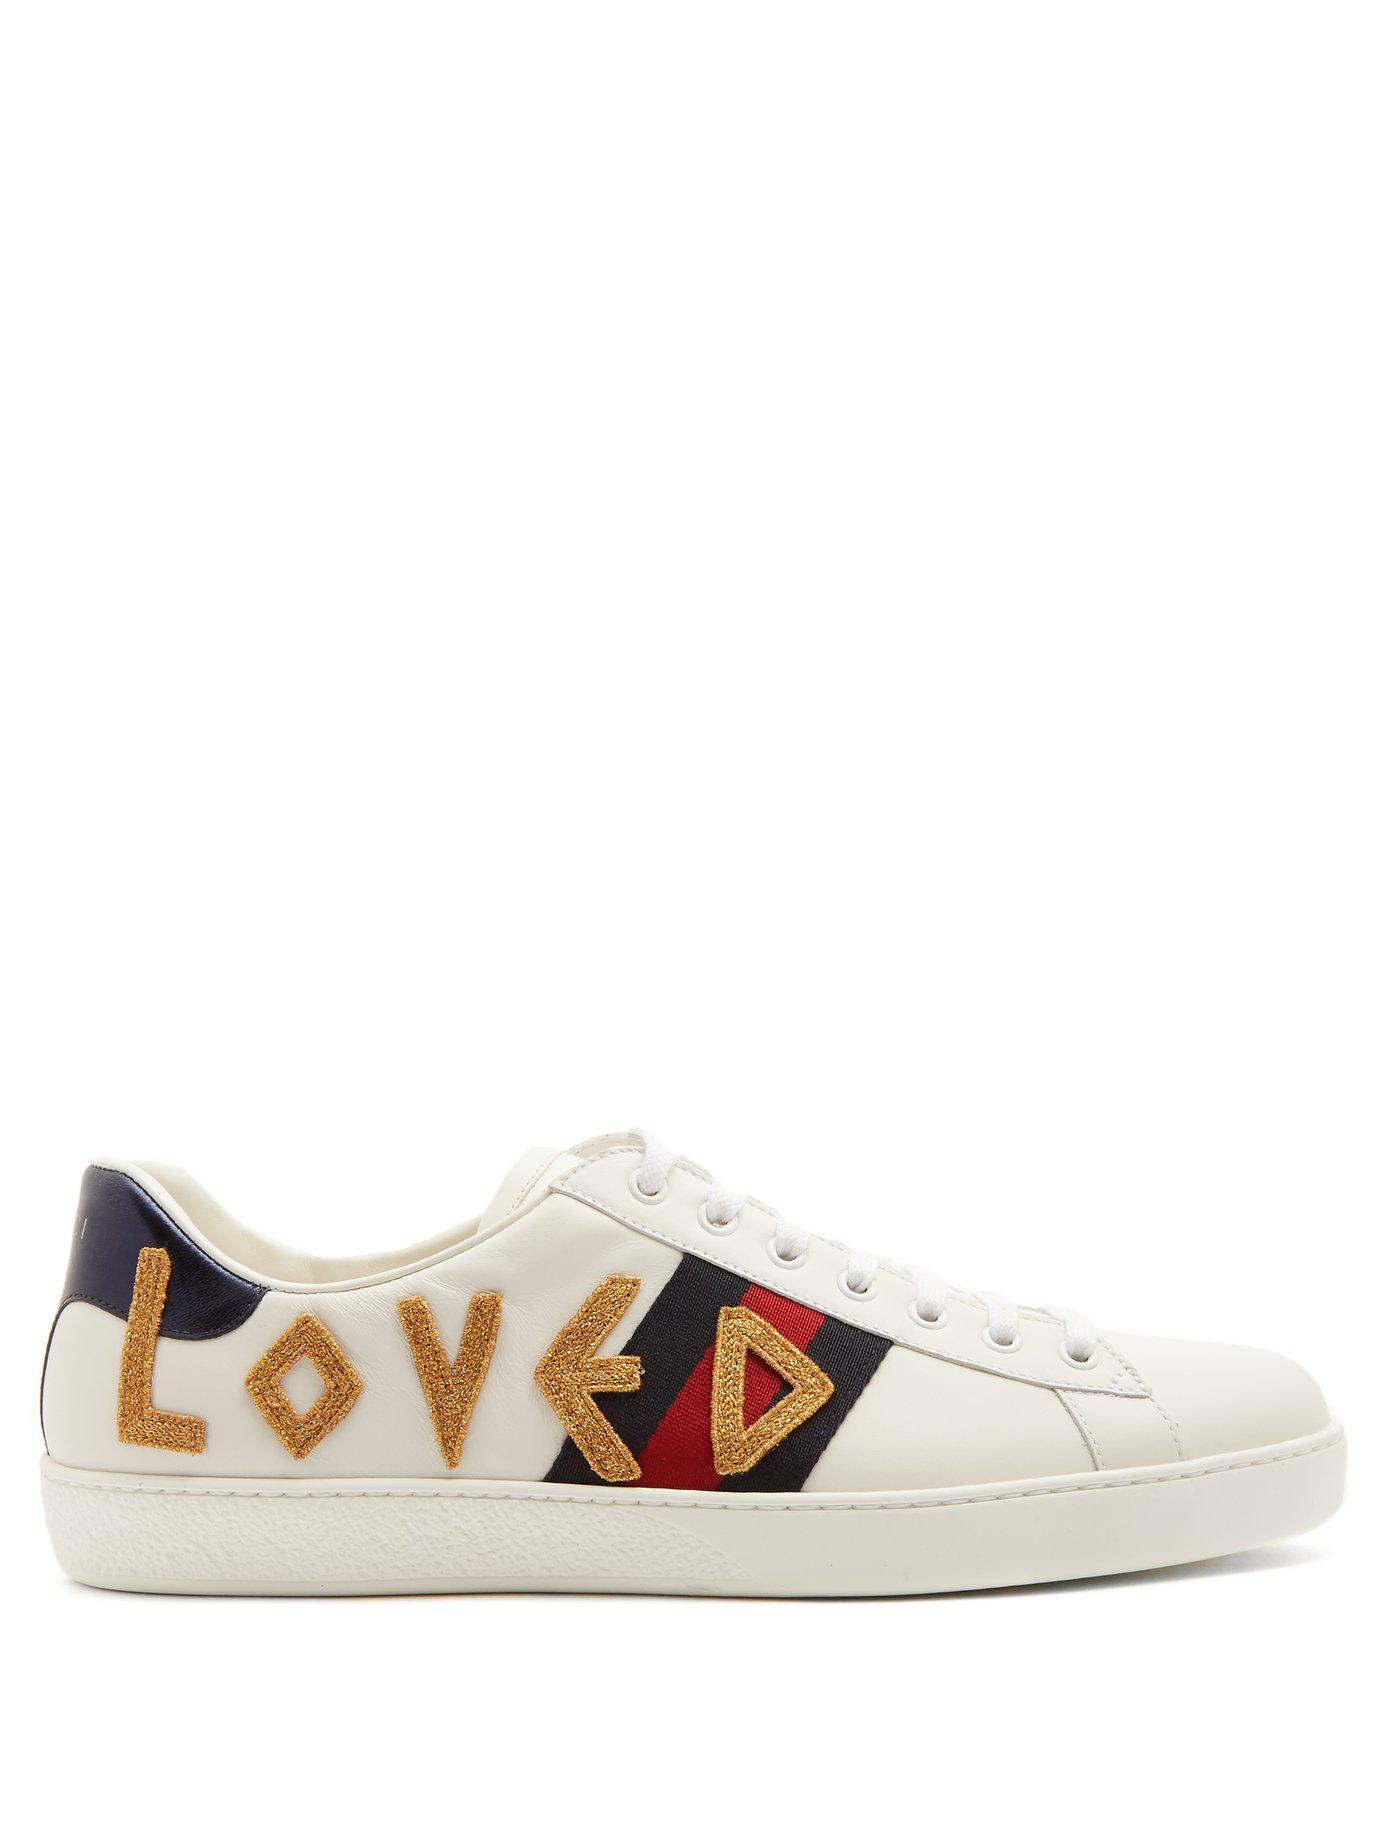 1934781882f Lyst - Gucci New Ace Embroidered Leather Trainers in White for Men